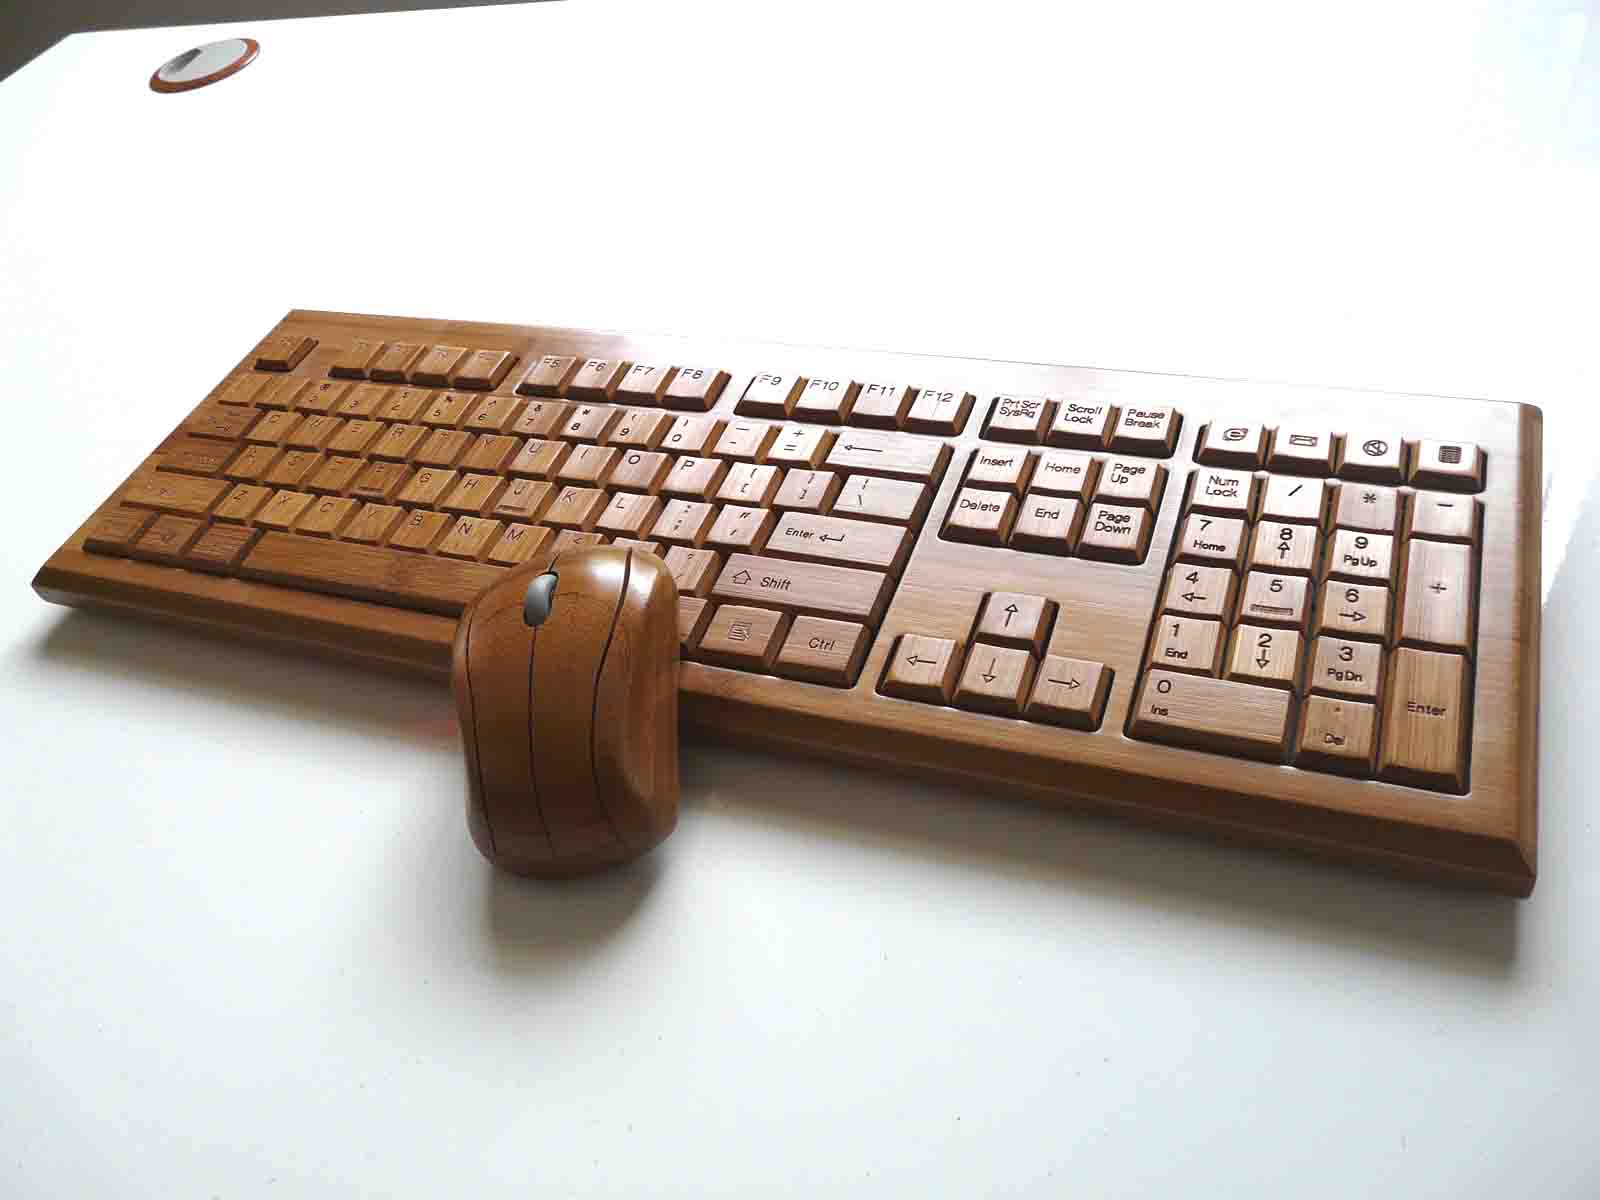 I did these things as a kid (but my kids won't) - Crappy Cool keyboard made pictures